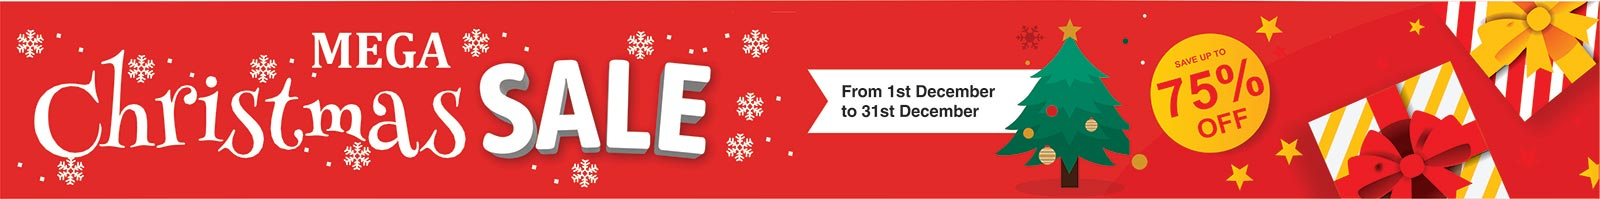 Engine Trust Christmas Offer